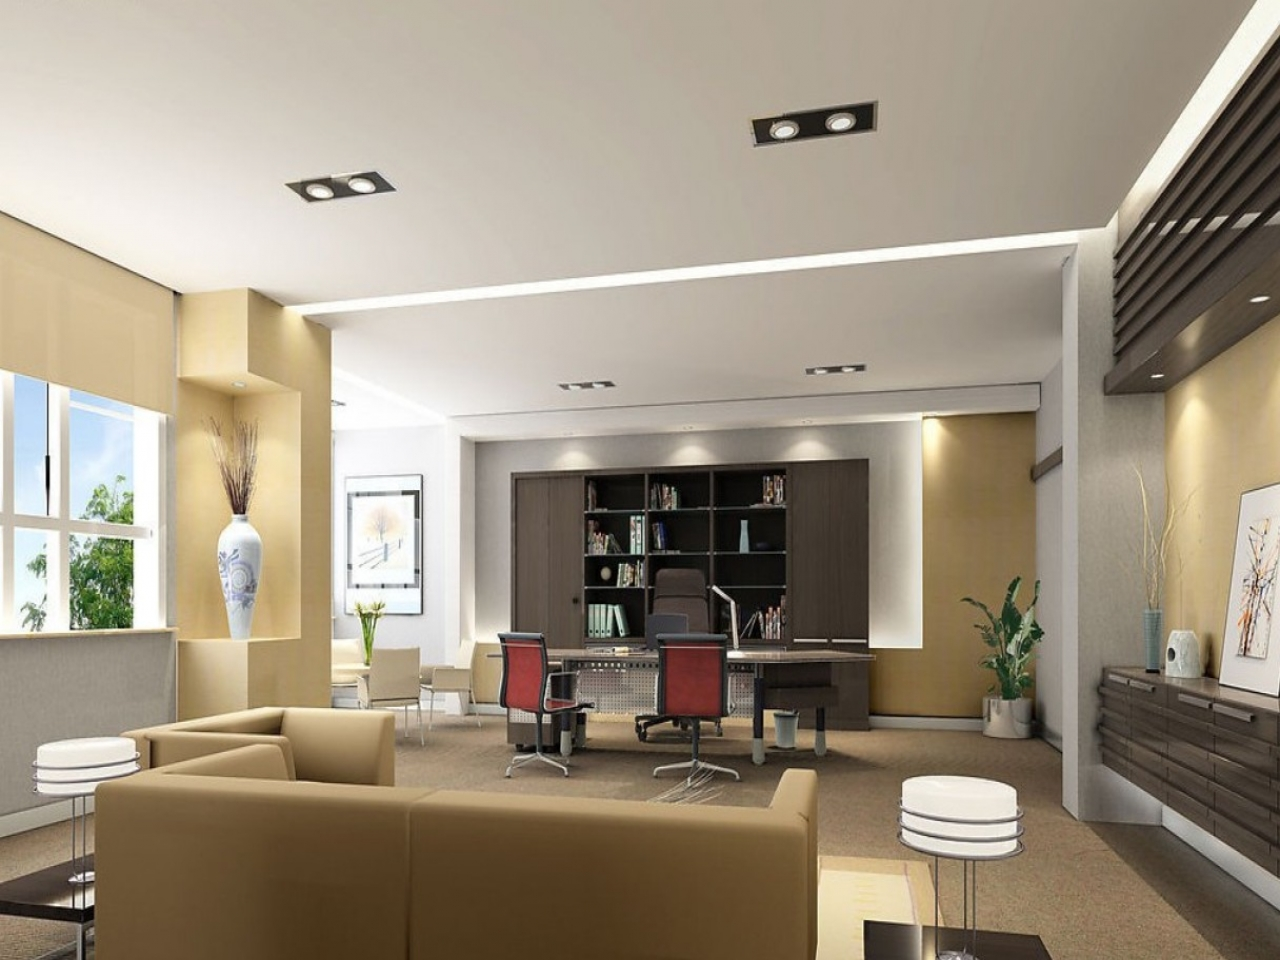 Official sofa design ideas for your work or home office for Modern office ceiling design ideas